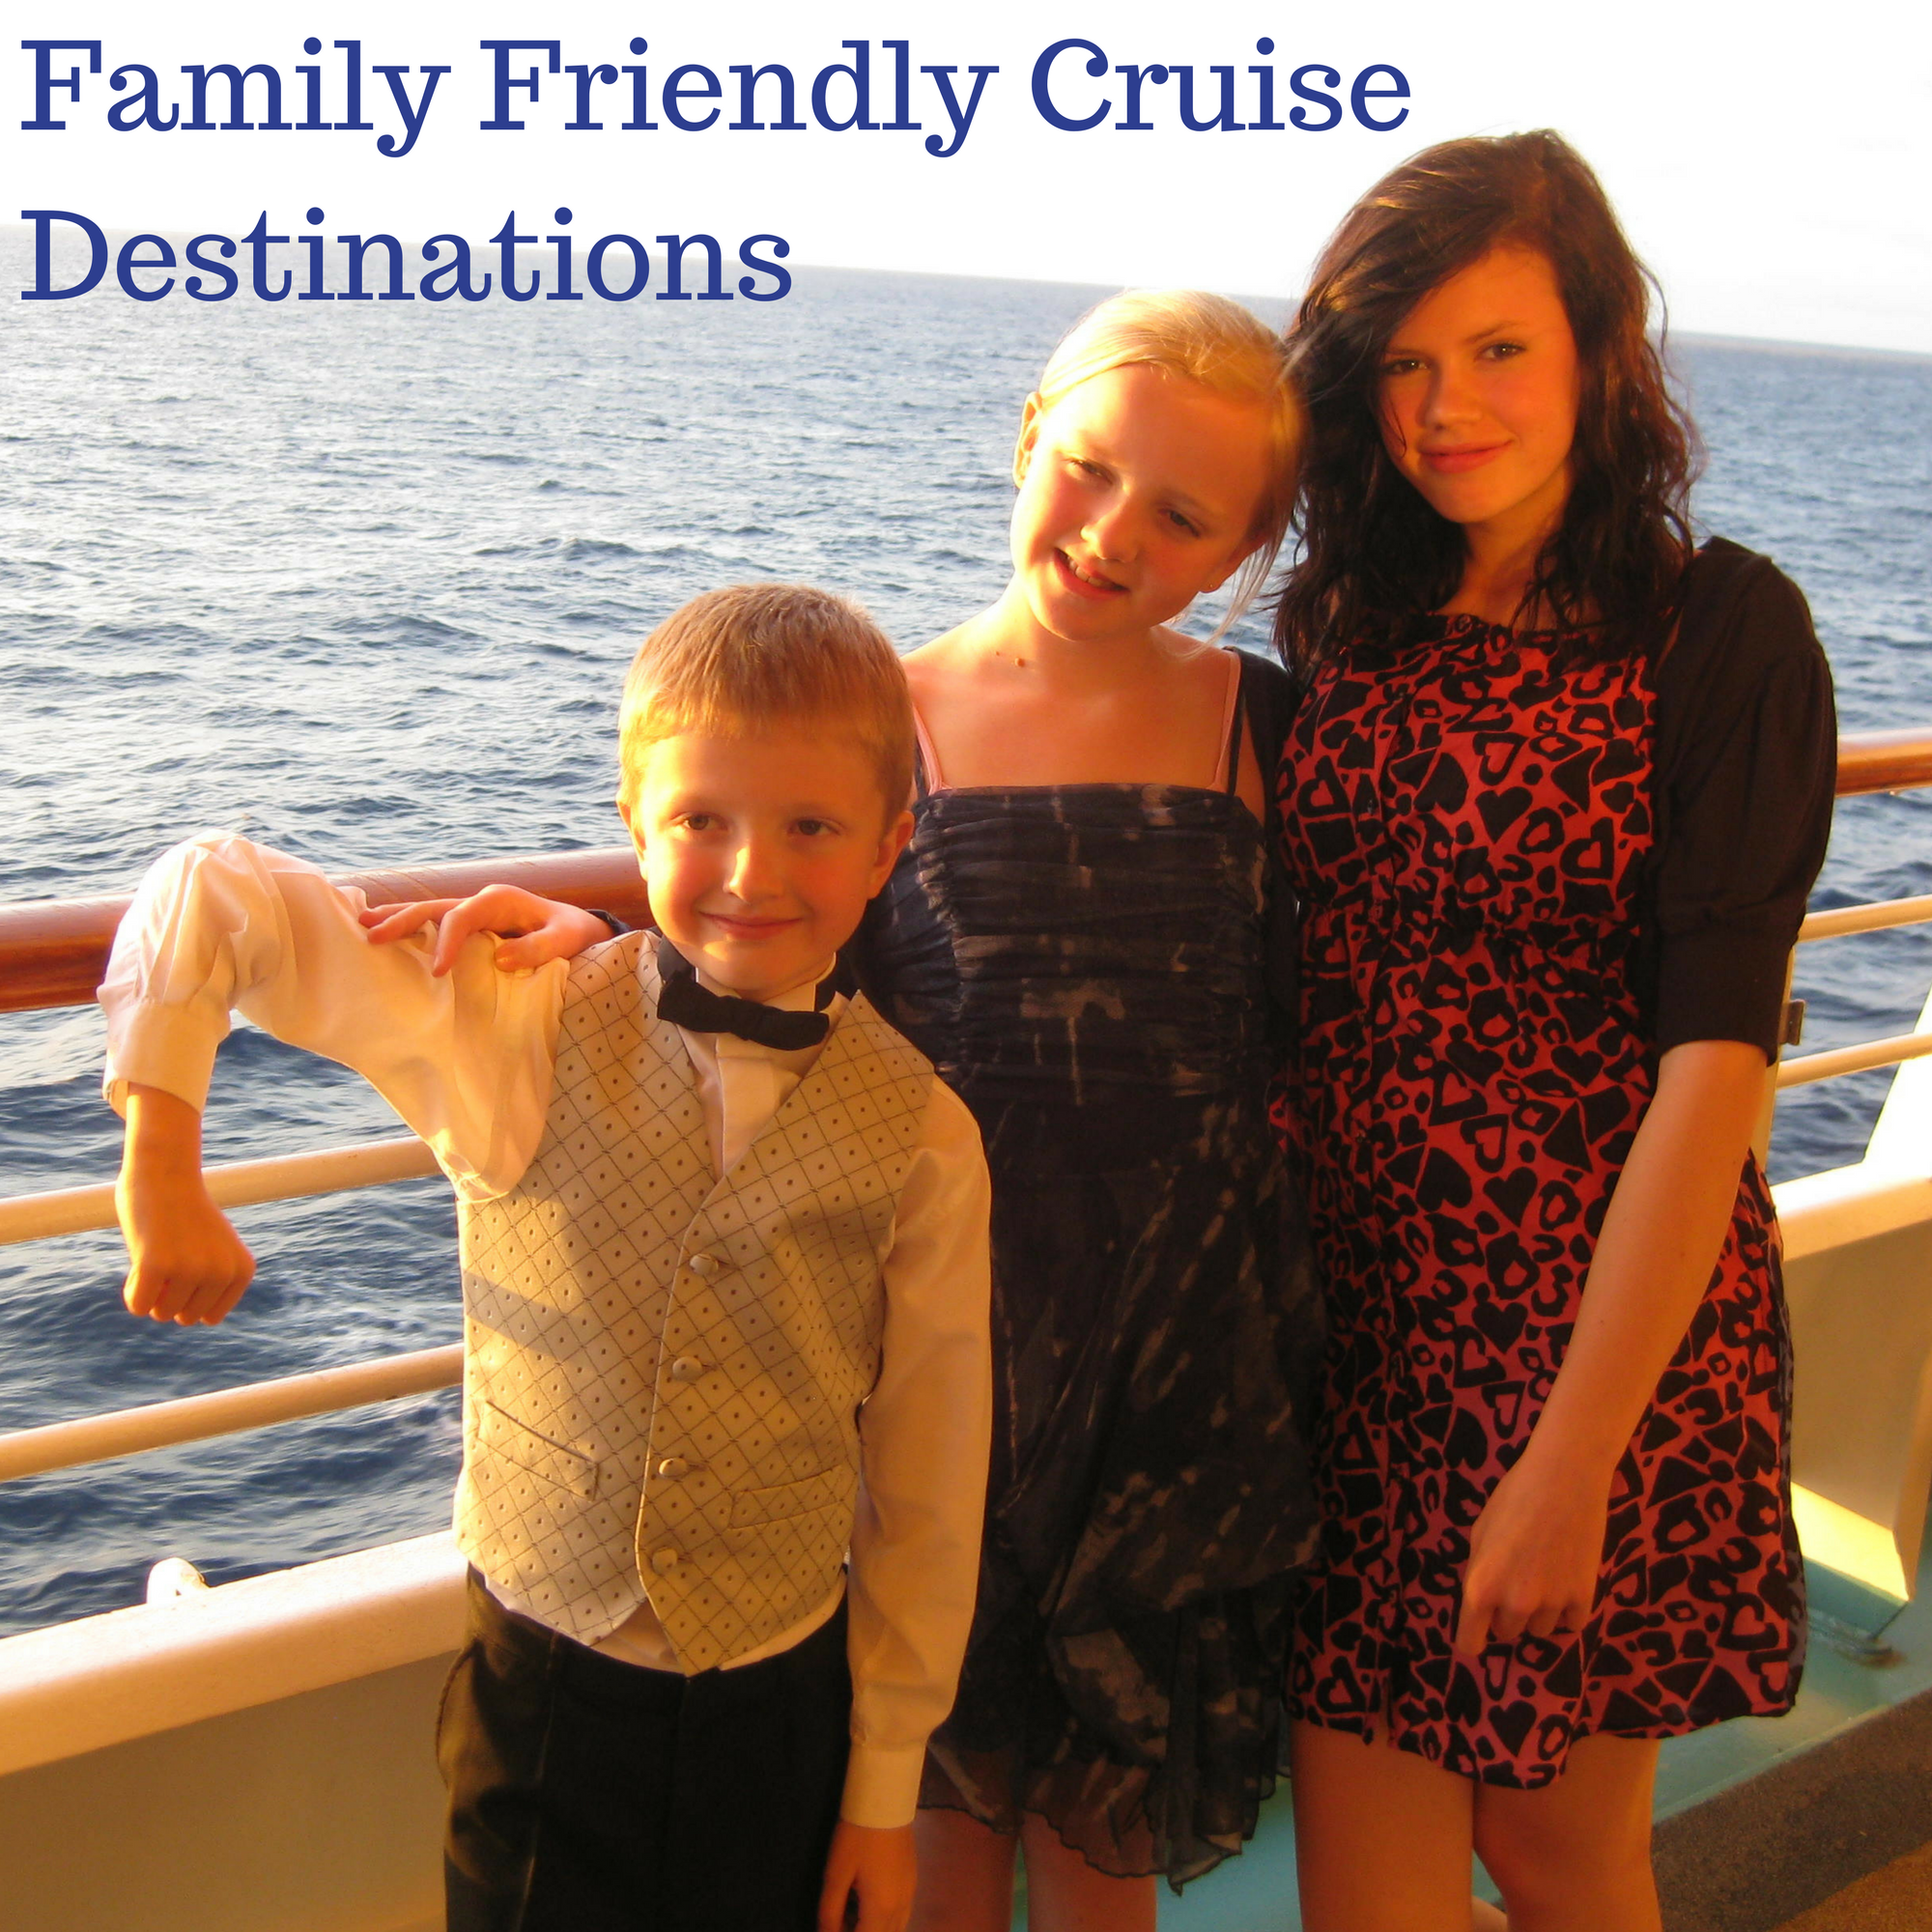 Family Friendly Cruise Destinations